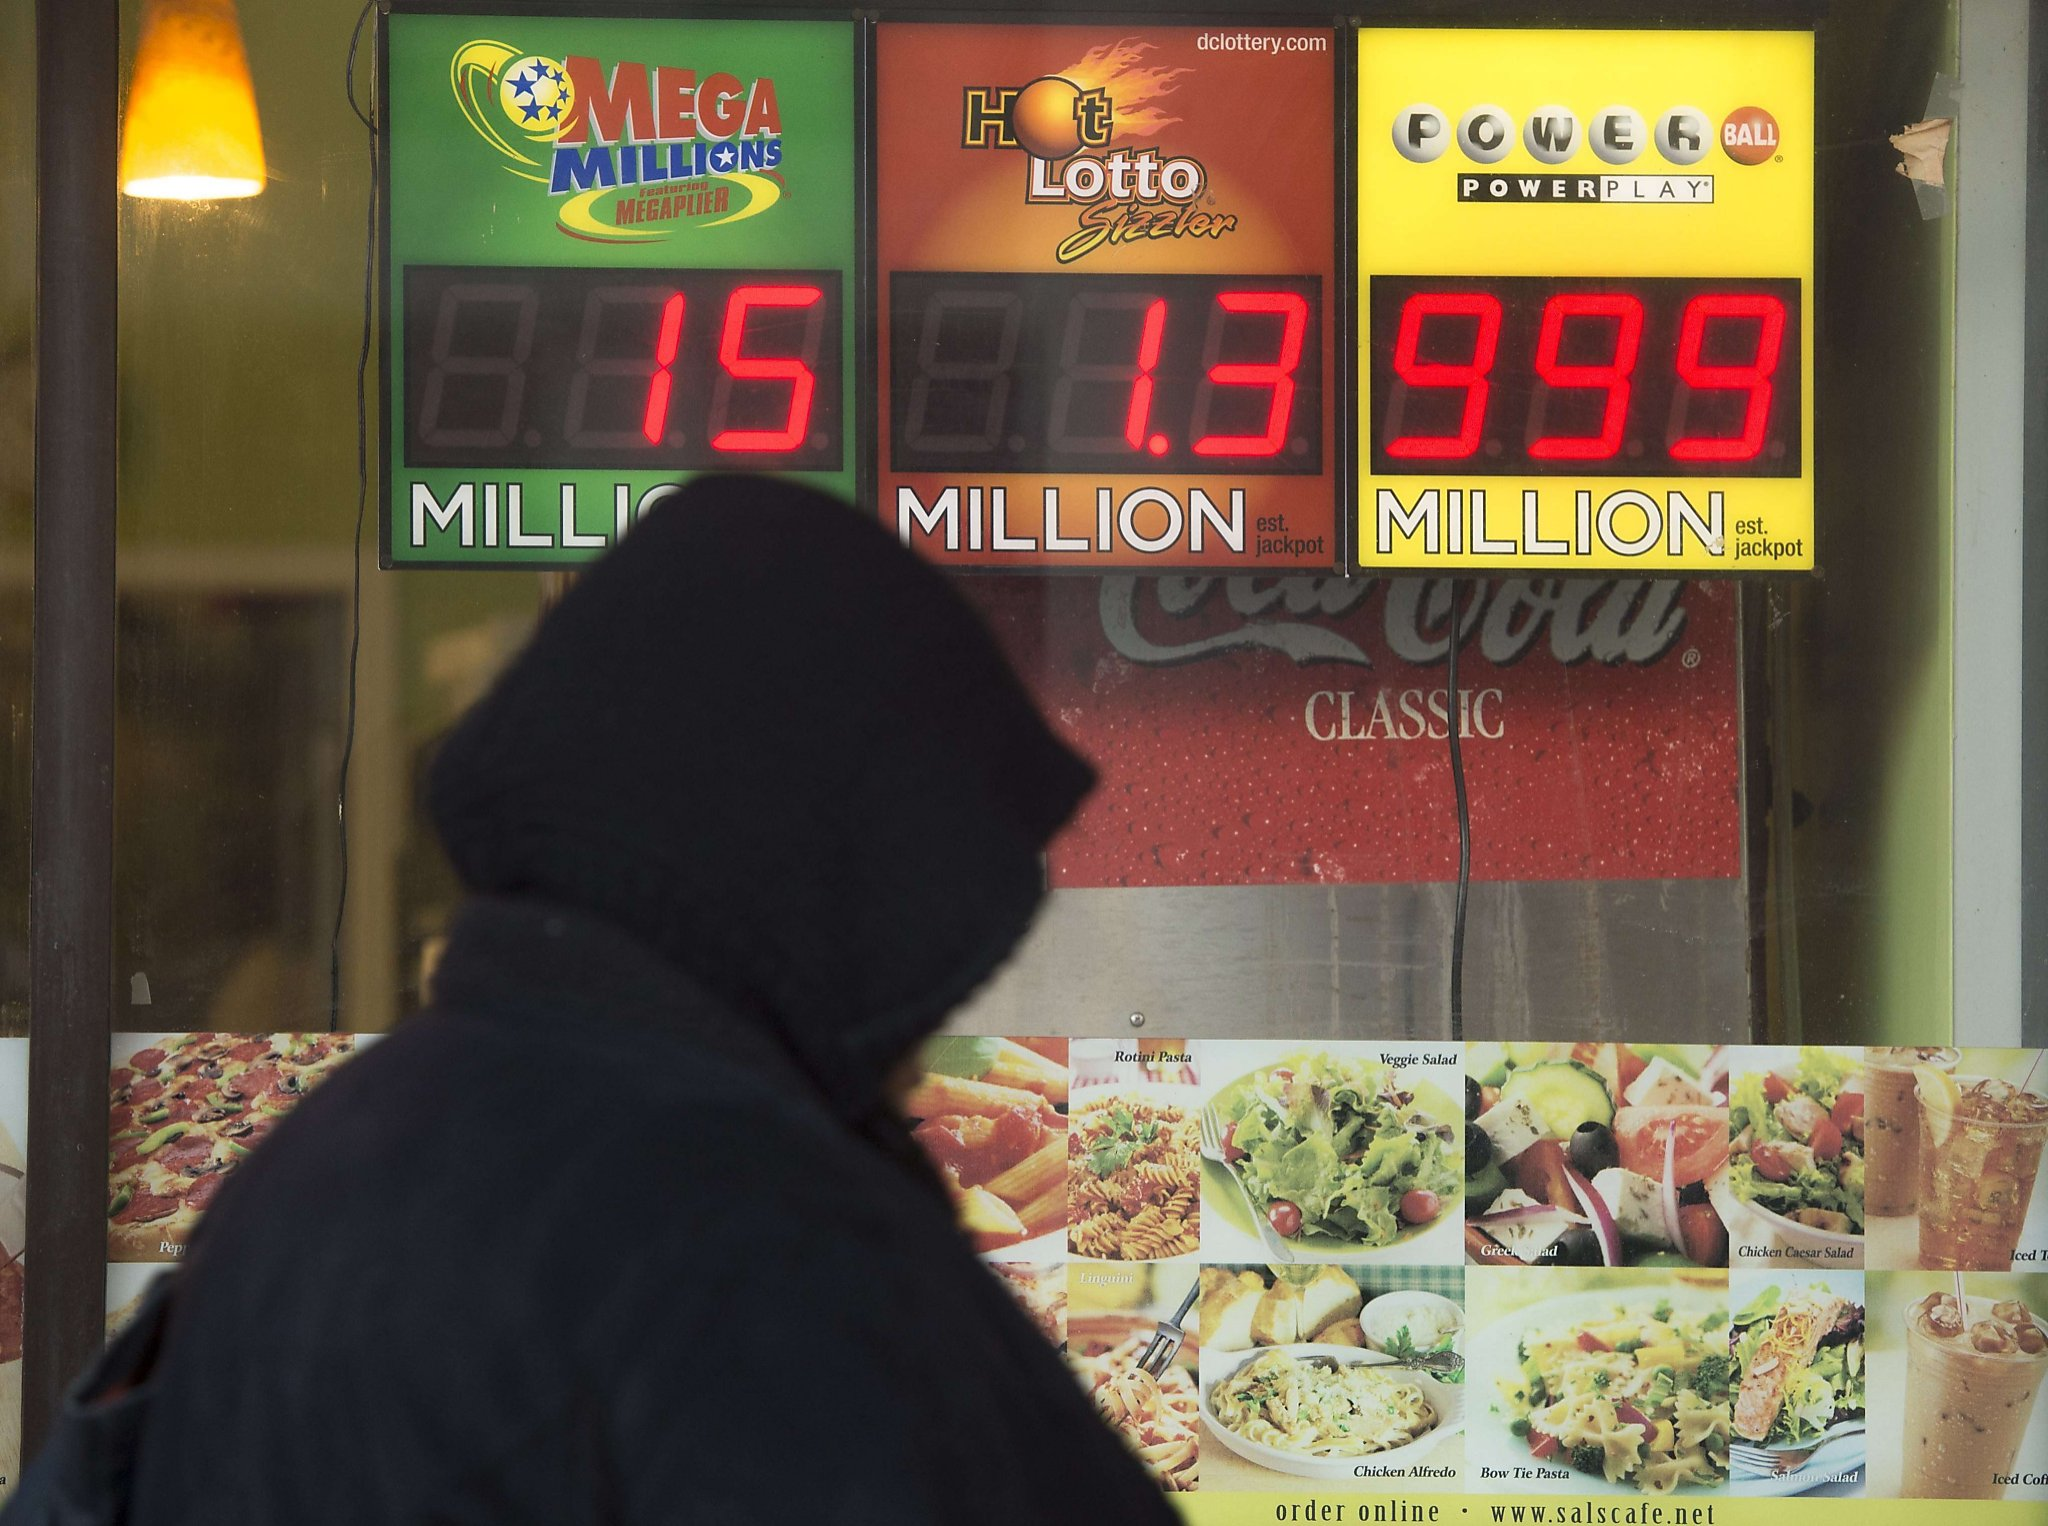 Lottery officials say identifying winners a must san francisco lottery officials say identifying winners a must san francisco chronicle falaconquin